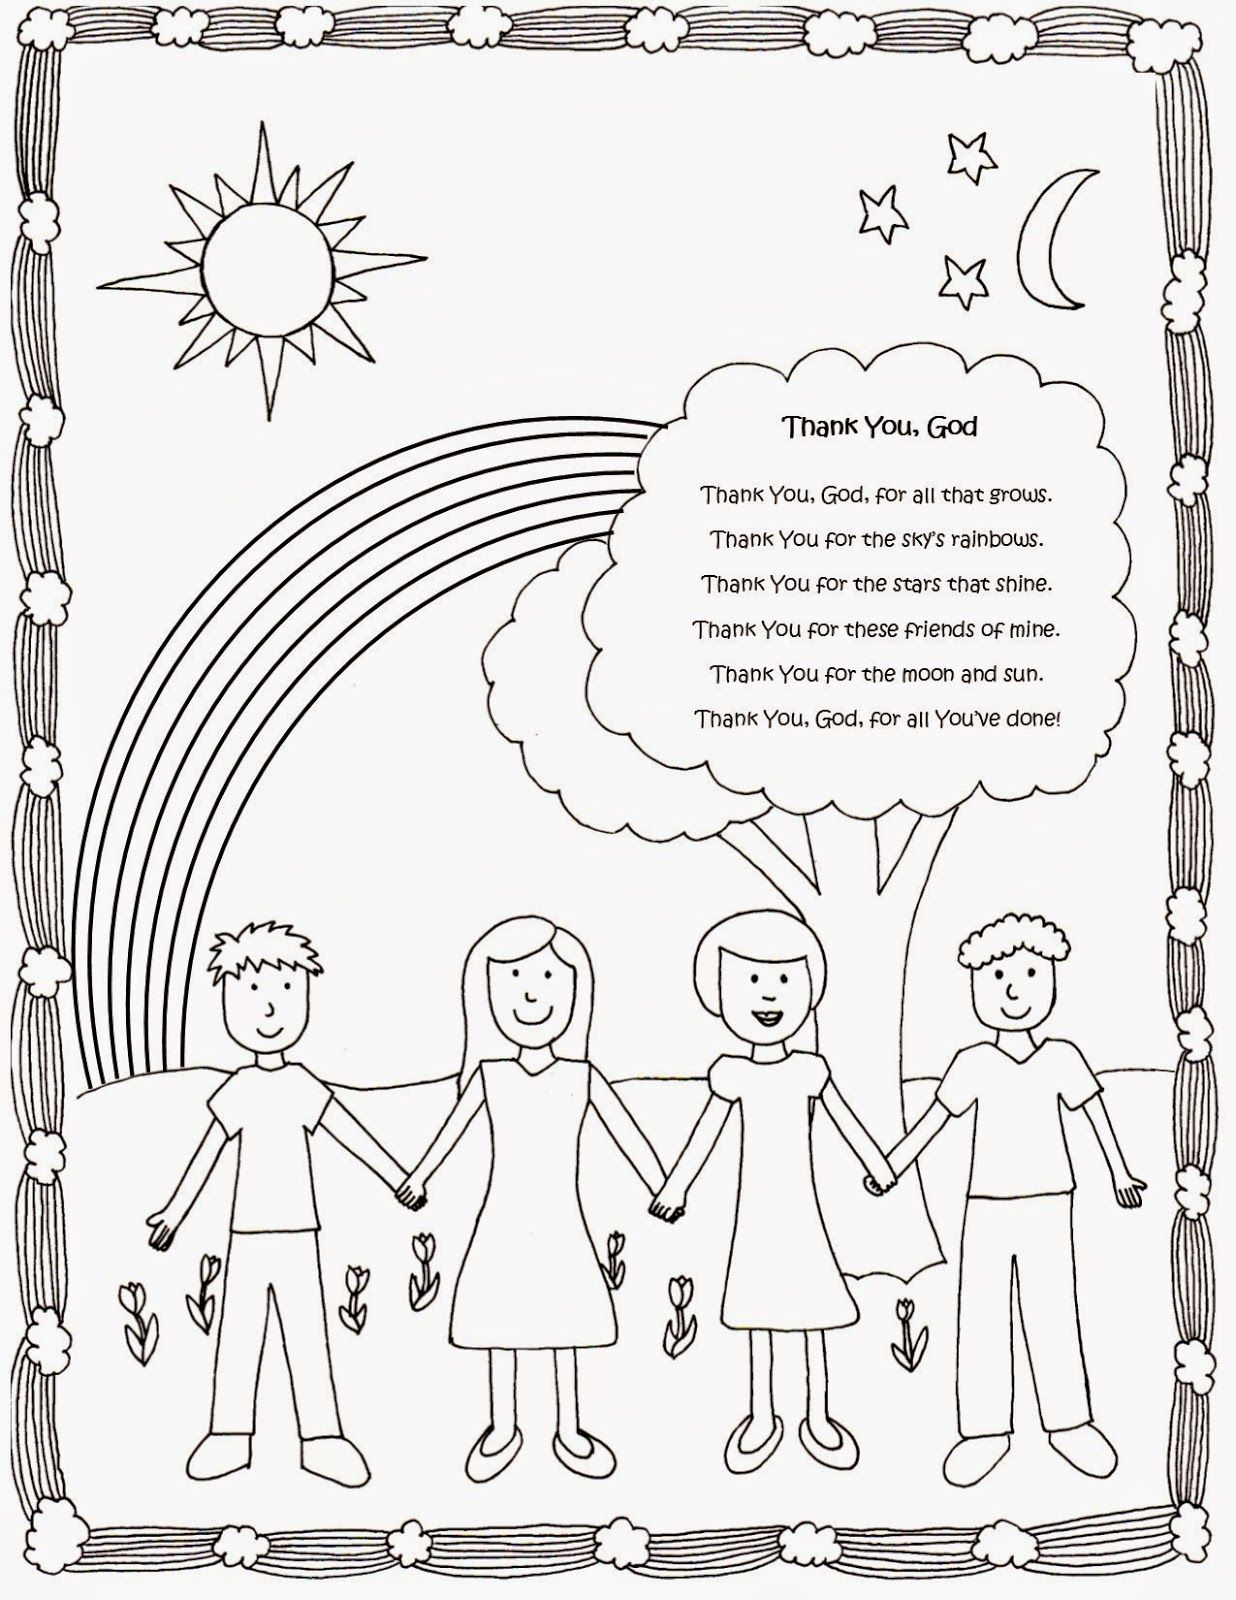 Drawn2bcreative Cute And Free Coloring Page With Thank You God